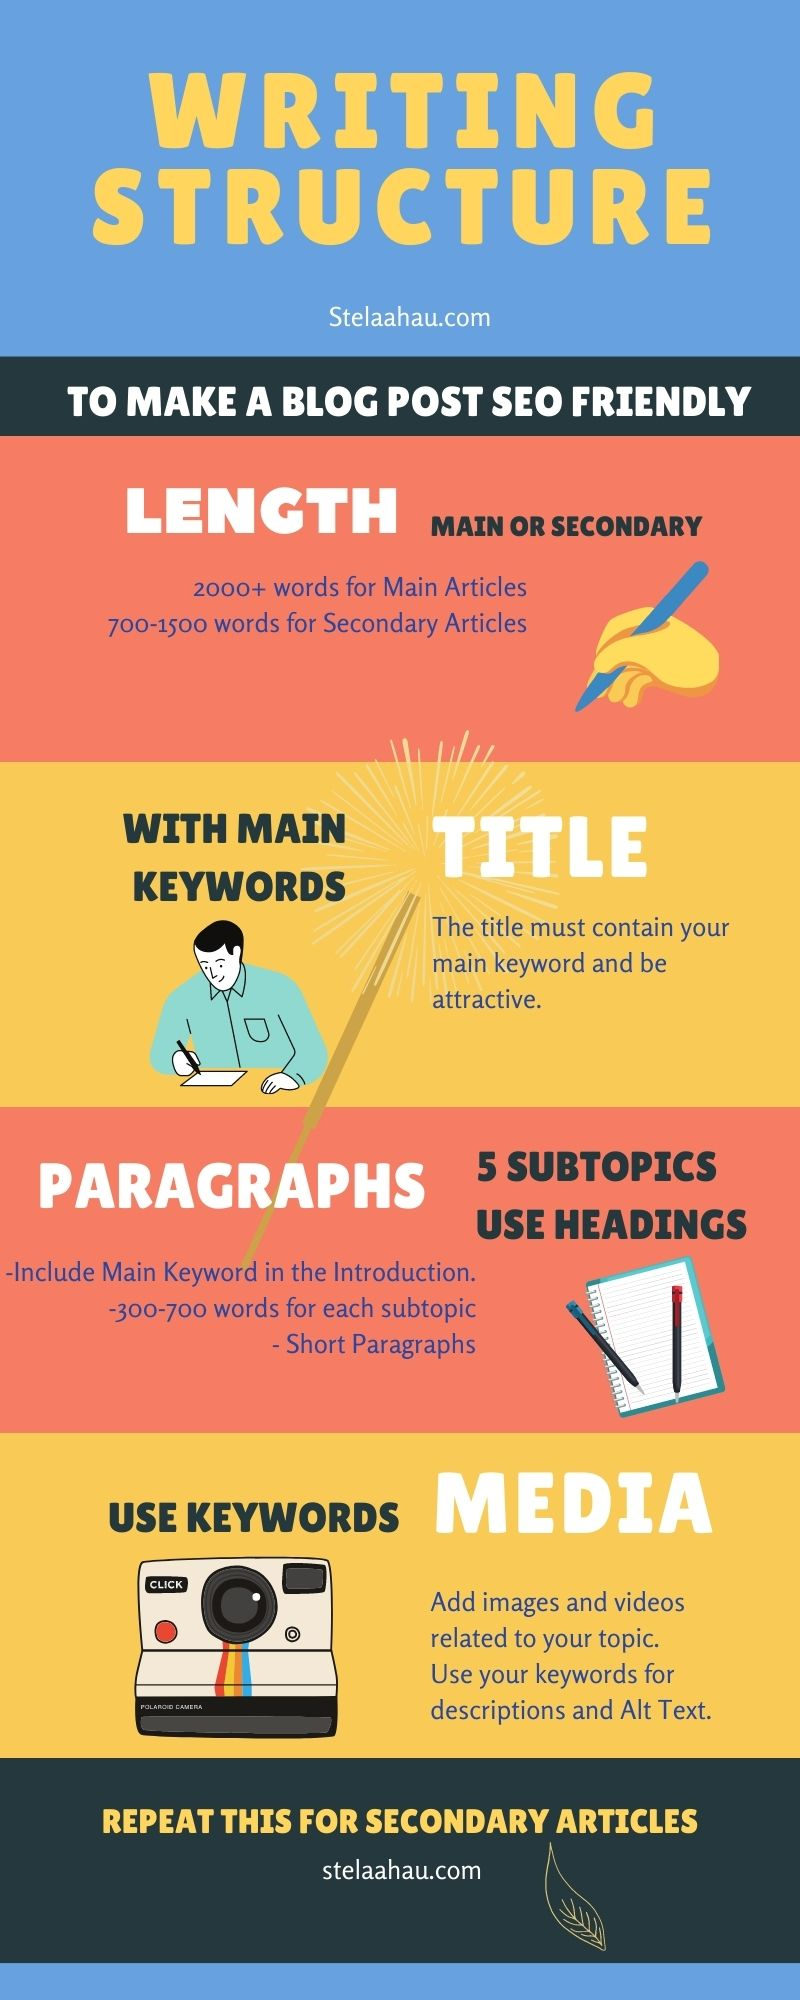 writing structure to make a blog post SEO friendly